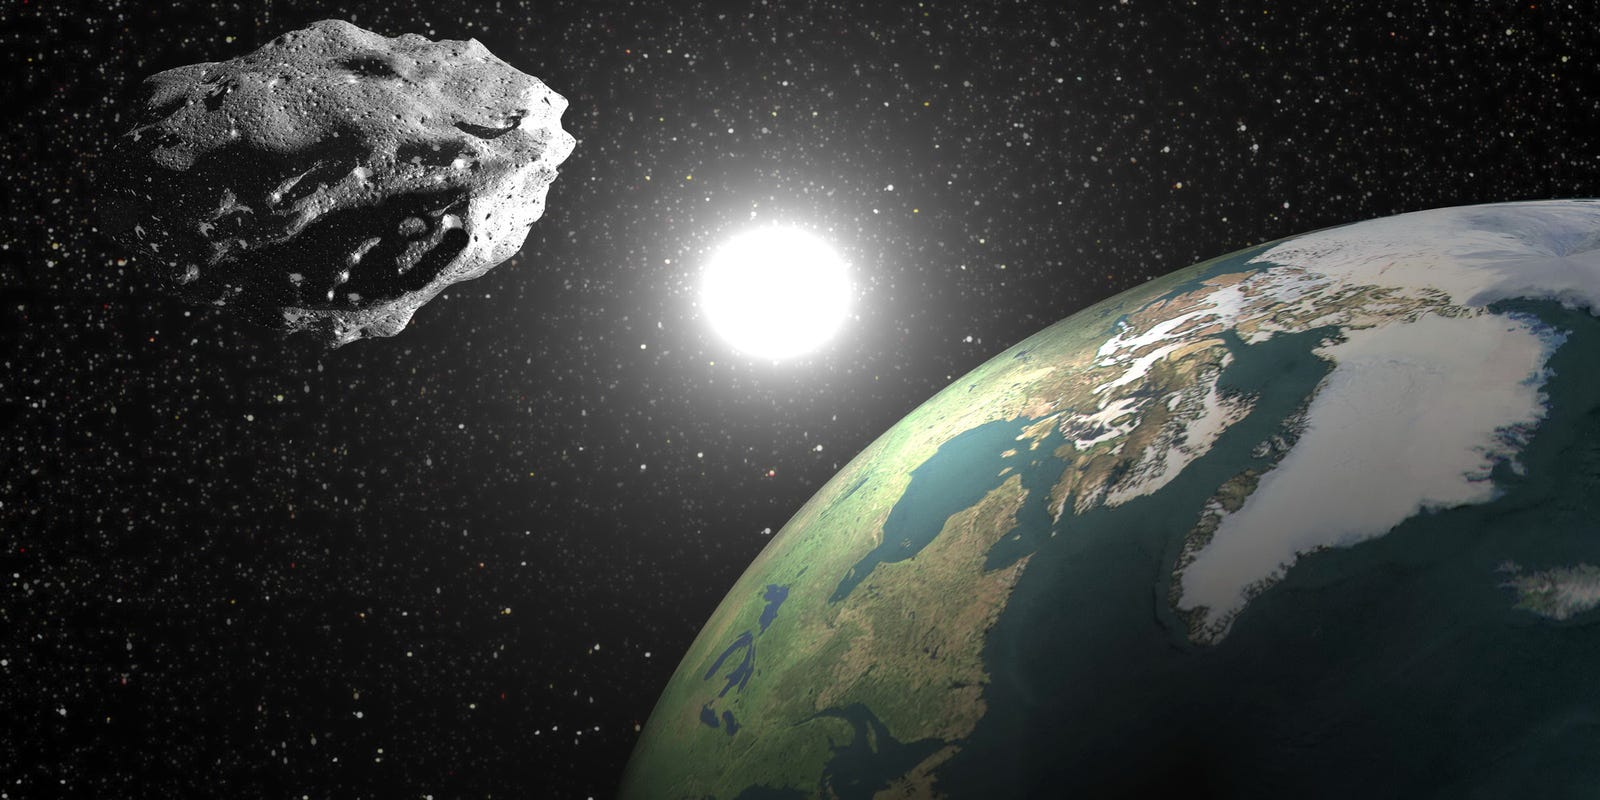 potentially hazardous asteroid will pass earth on super bowl sunday